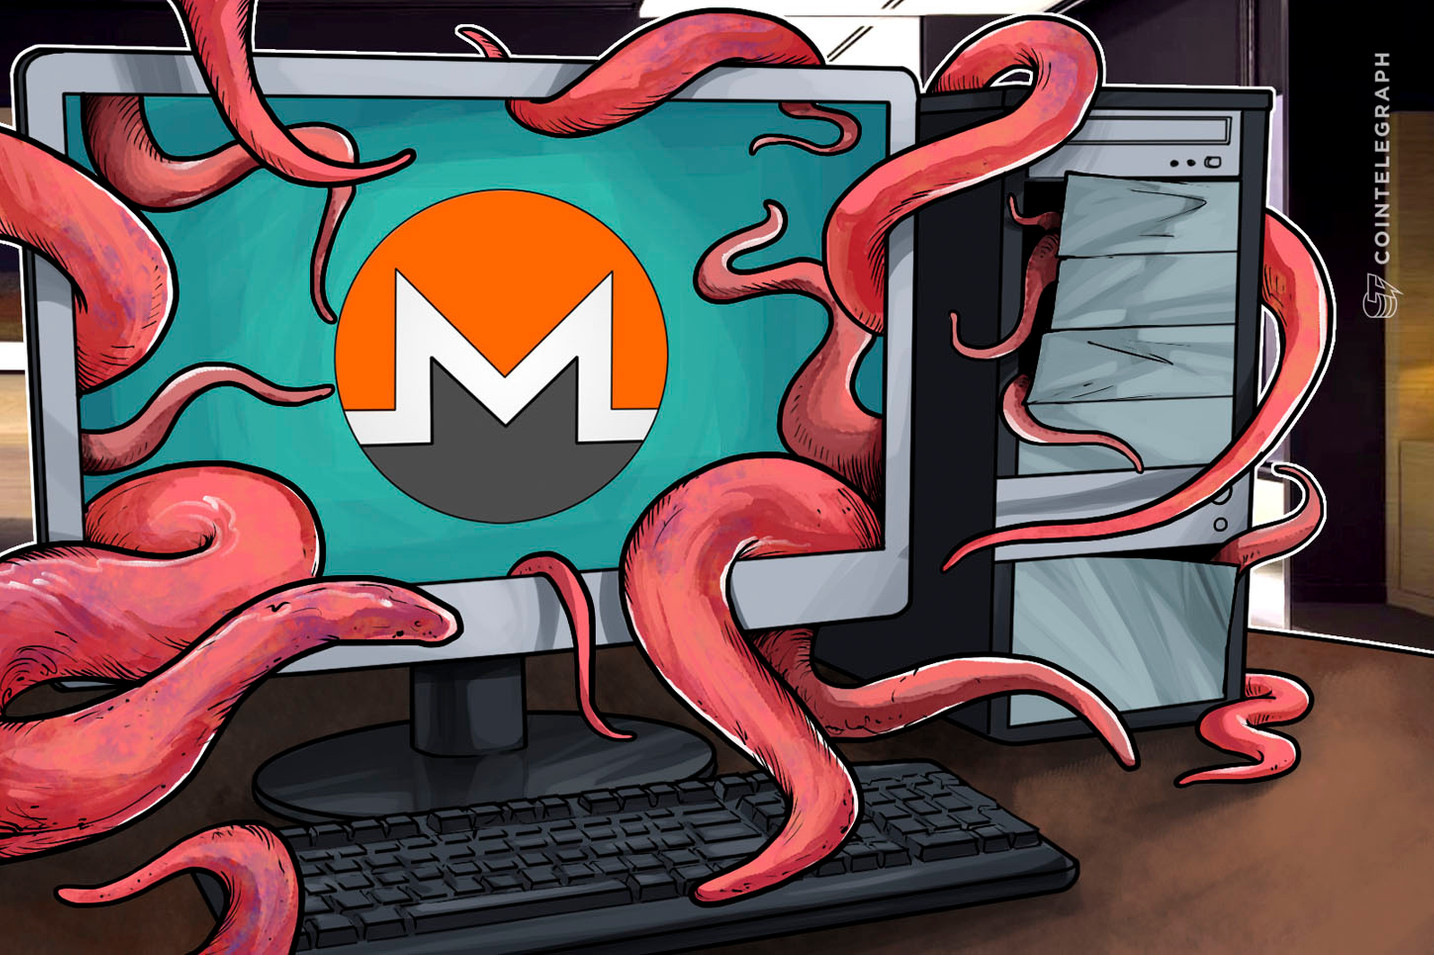 5 Percent of Monero in Circulation Was Mined Through Malware, Research Finds